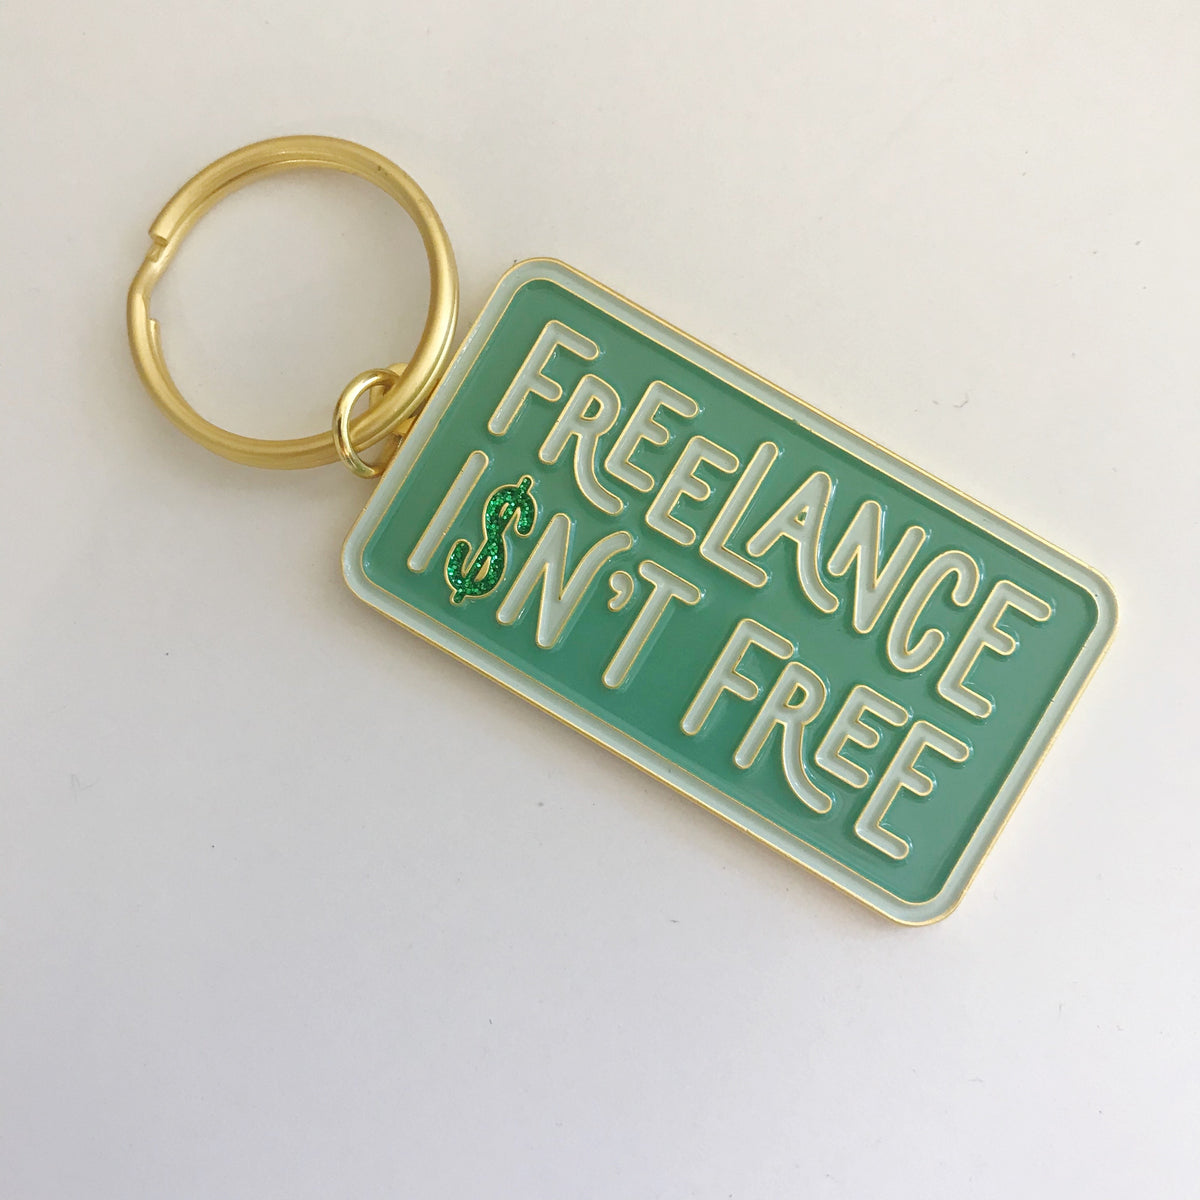 Freelance Isn't Free Keychain